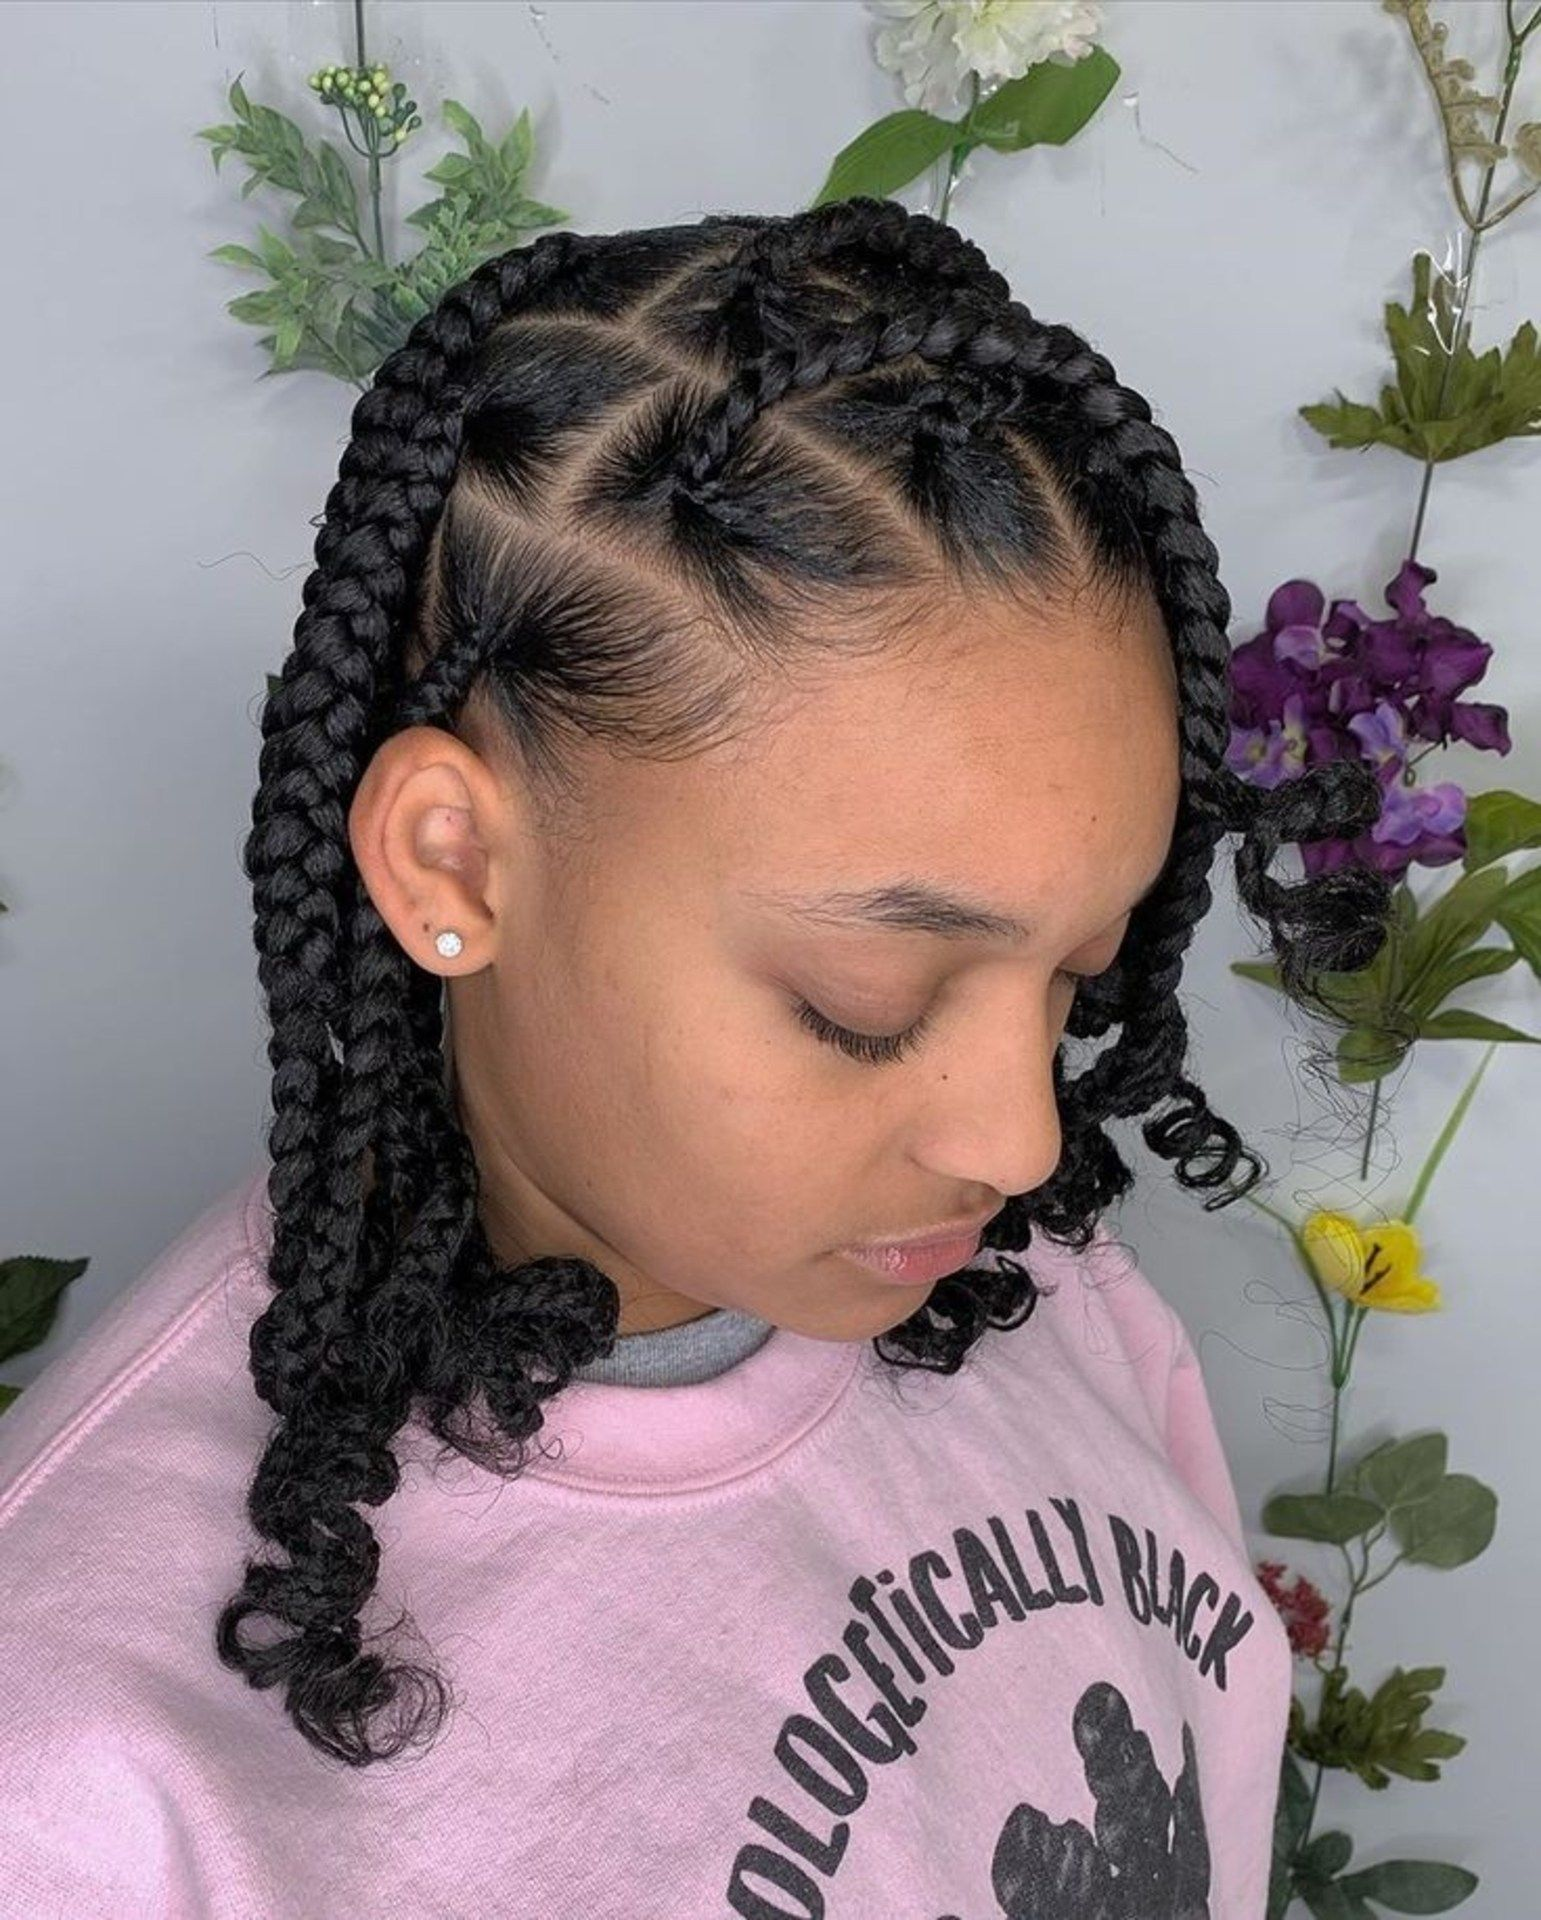 Best Braiding Hairstyles African American Hair 715 Store Petite Wigs Hair Weft Extensions Softball Hairstyles